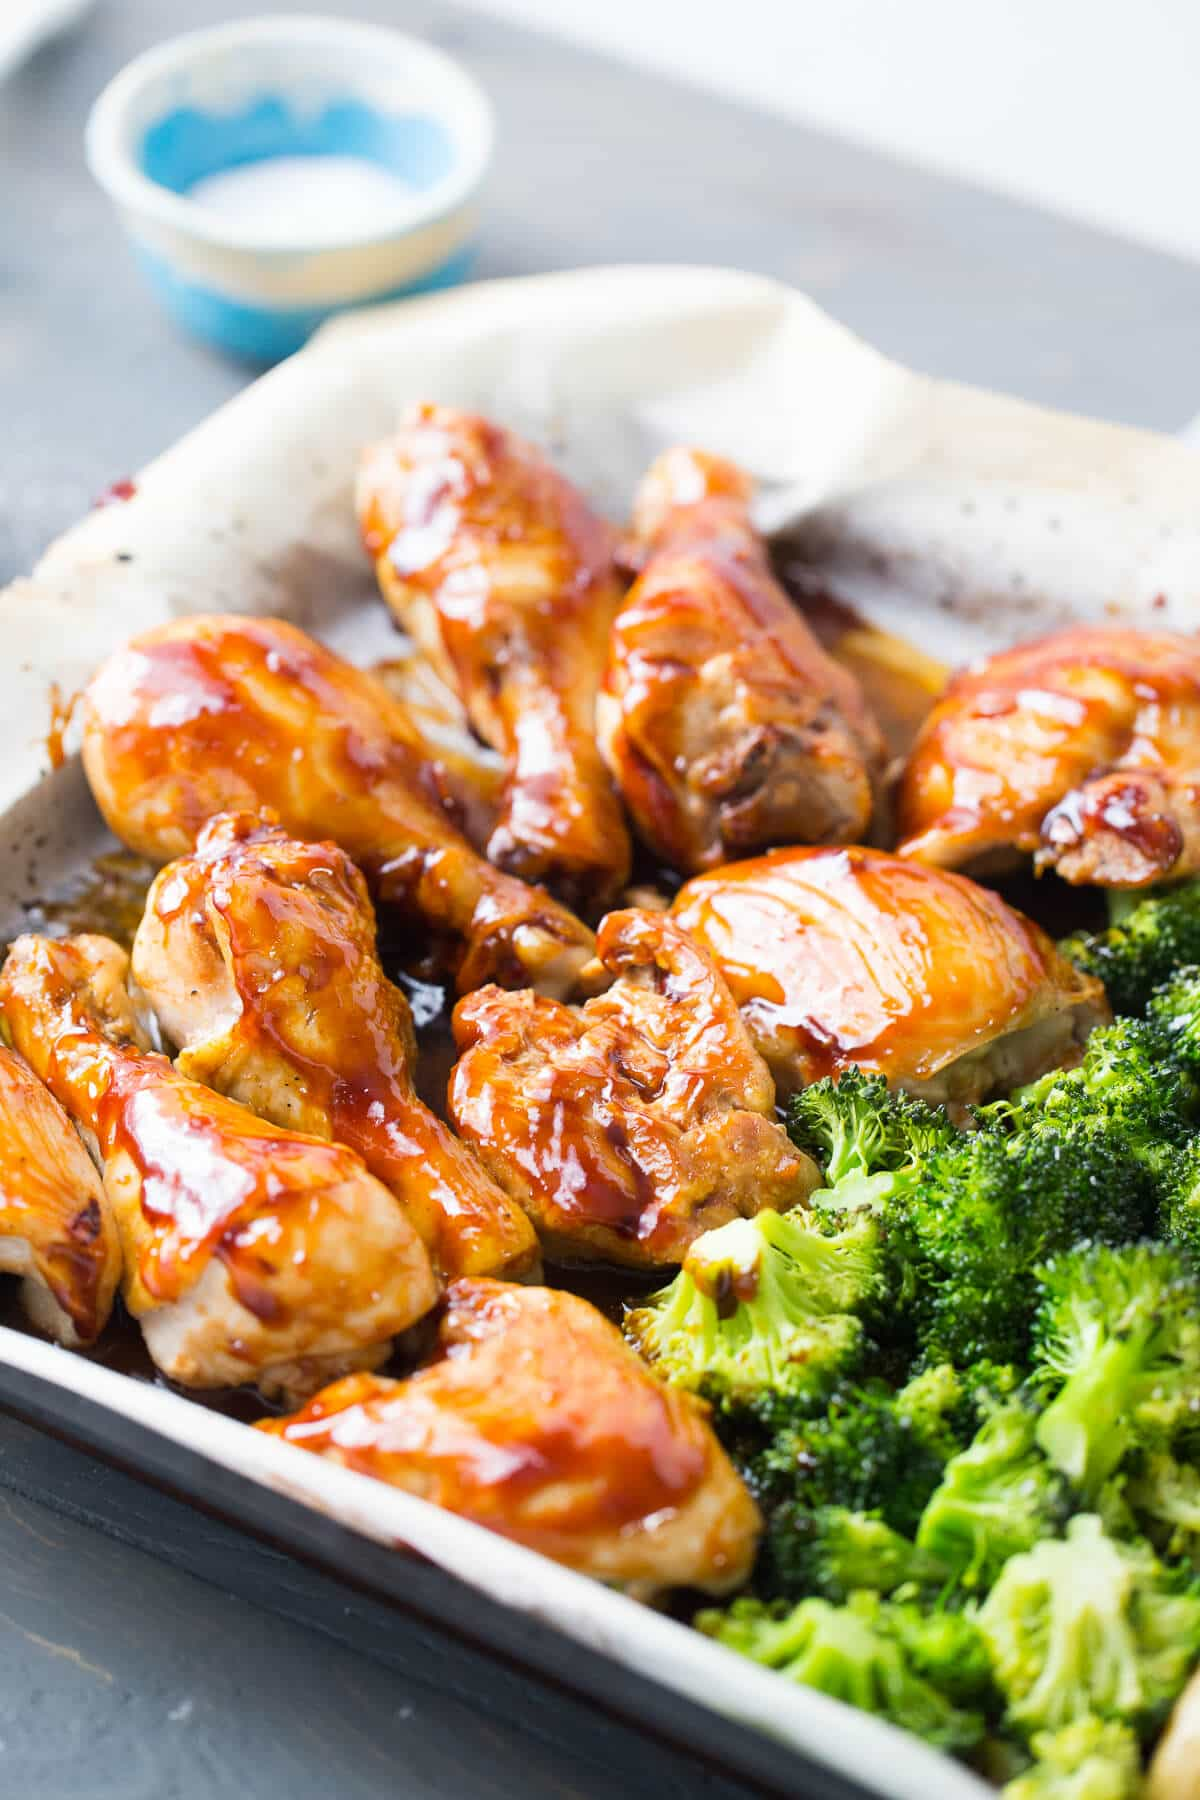 This sheet pan dinner is so simple and so good! The bourbon chicken recipe feature chicken coated with a sticky sweet bourbon glaze and served it with potatoes and broccoli!